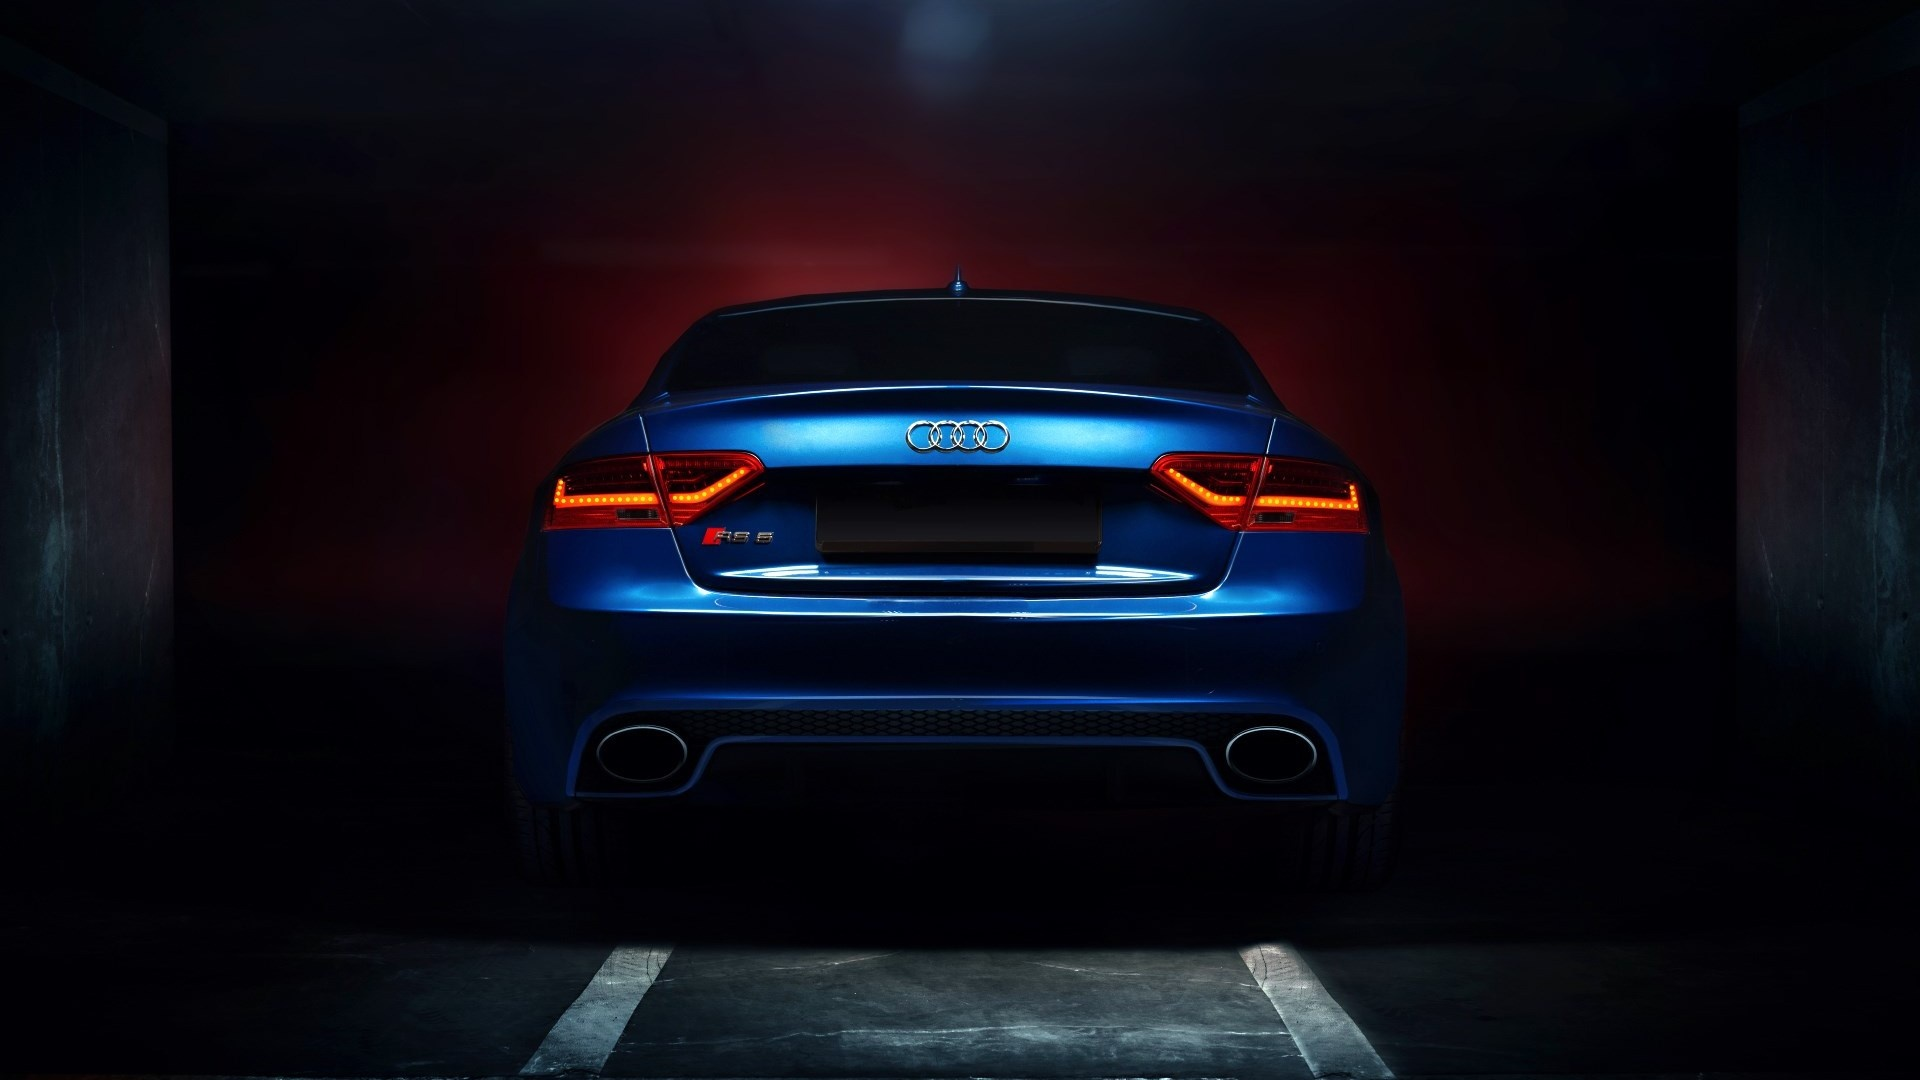 Audi Rs5 Coupe Tuning Blue Car Backlights Glow Wallpapers